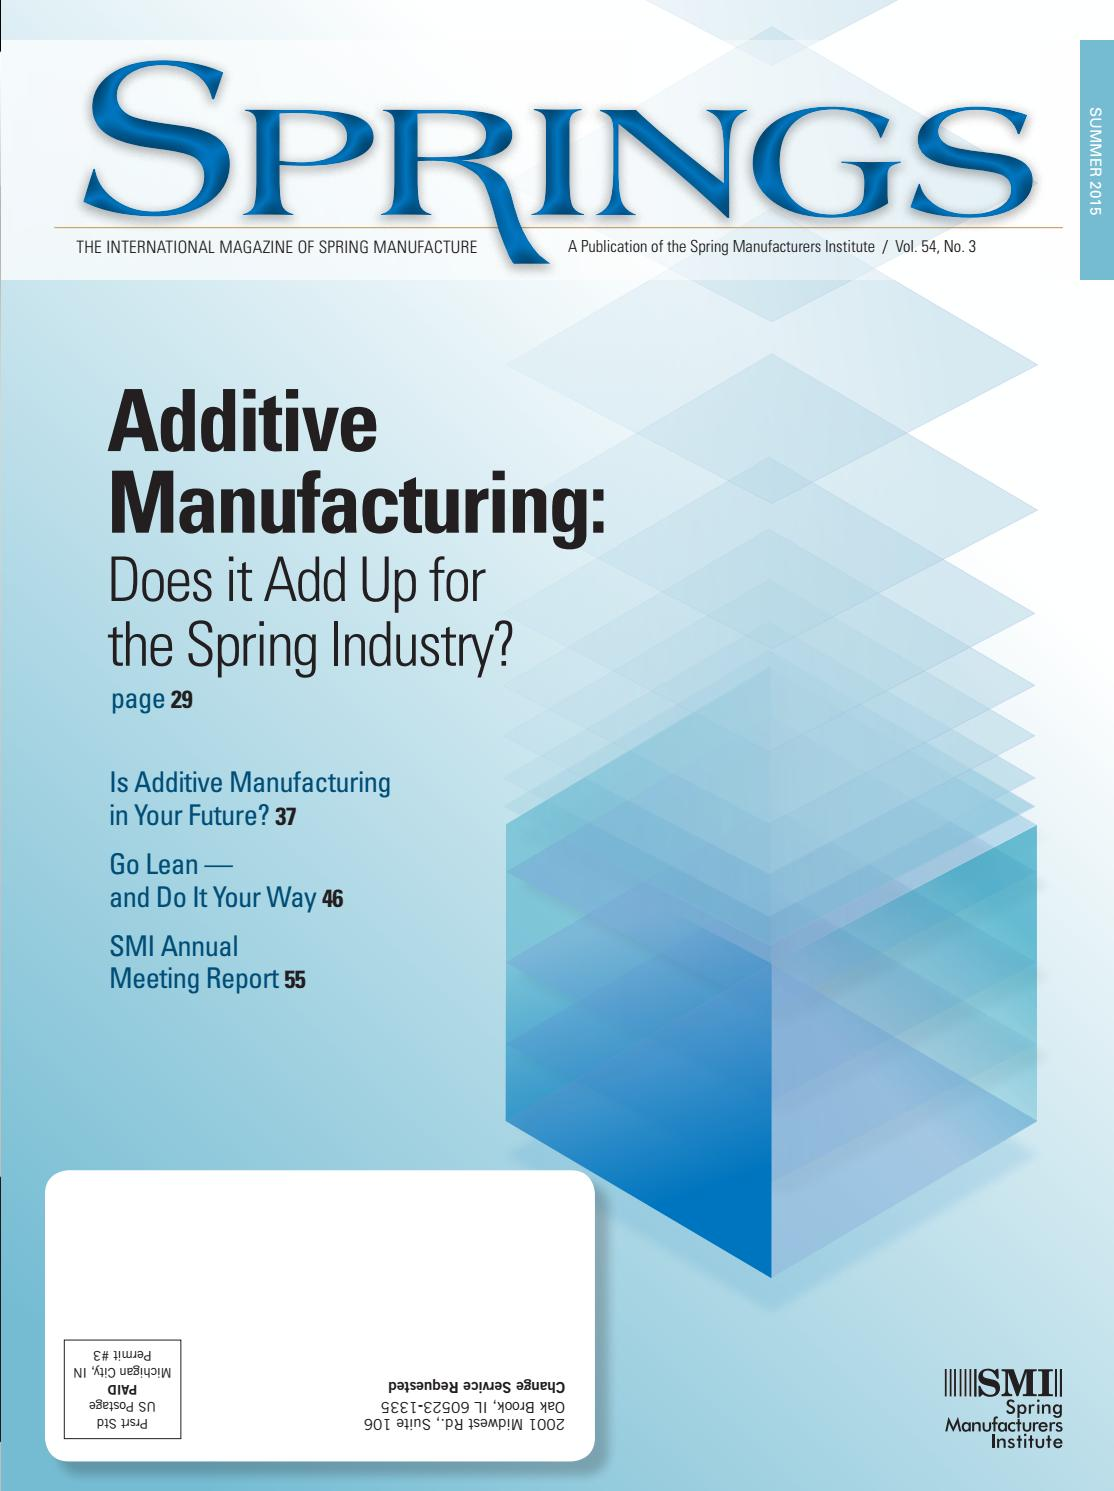 Springs summer 2015 vol 54 no3 by Spring Manufacturers Institute - issuu